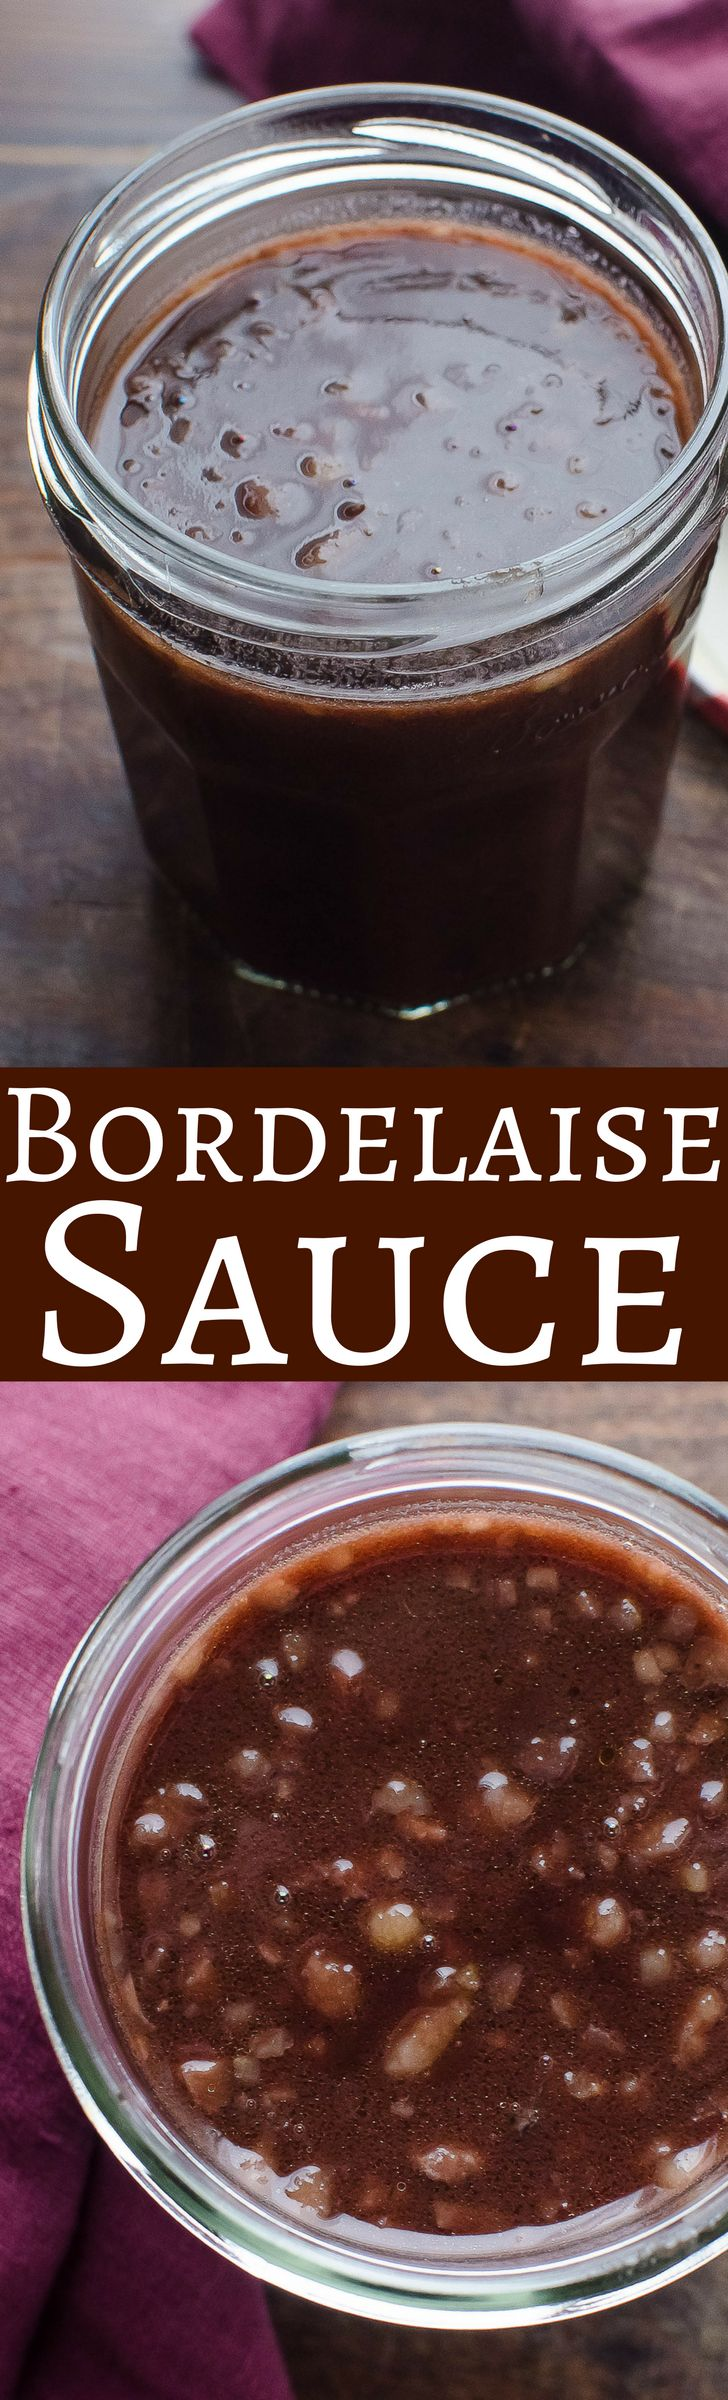 Bordelaise Sauce - for your holiday roast! Rich with demi-glace, bone marrow and wine, it's rich and silky! Christmas | New Year's Eve